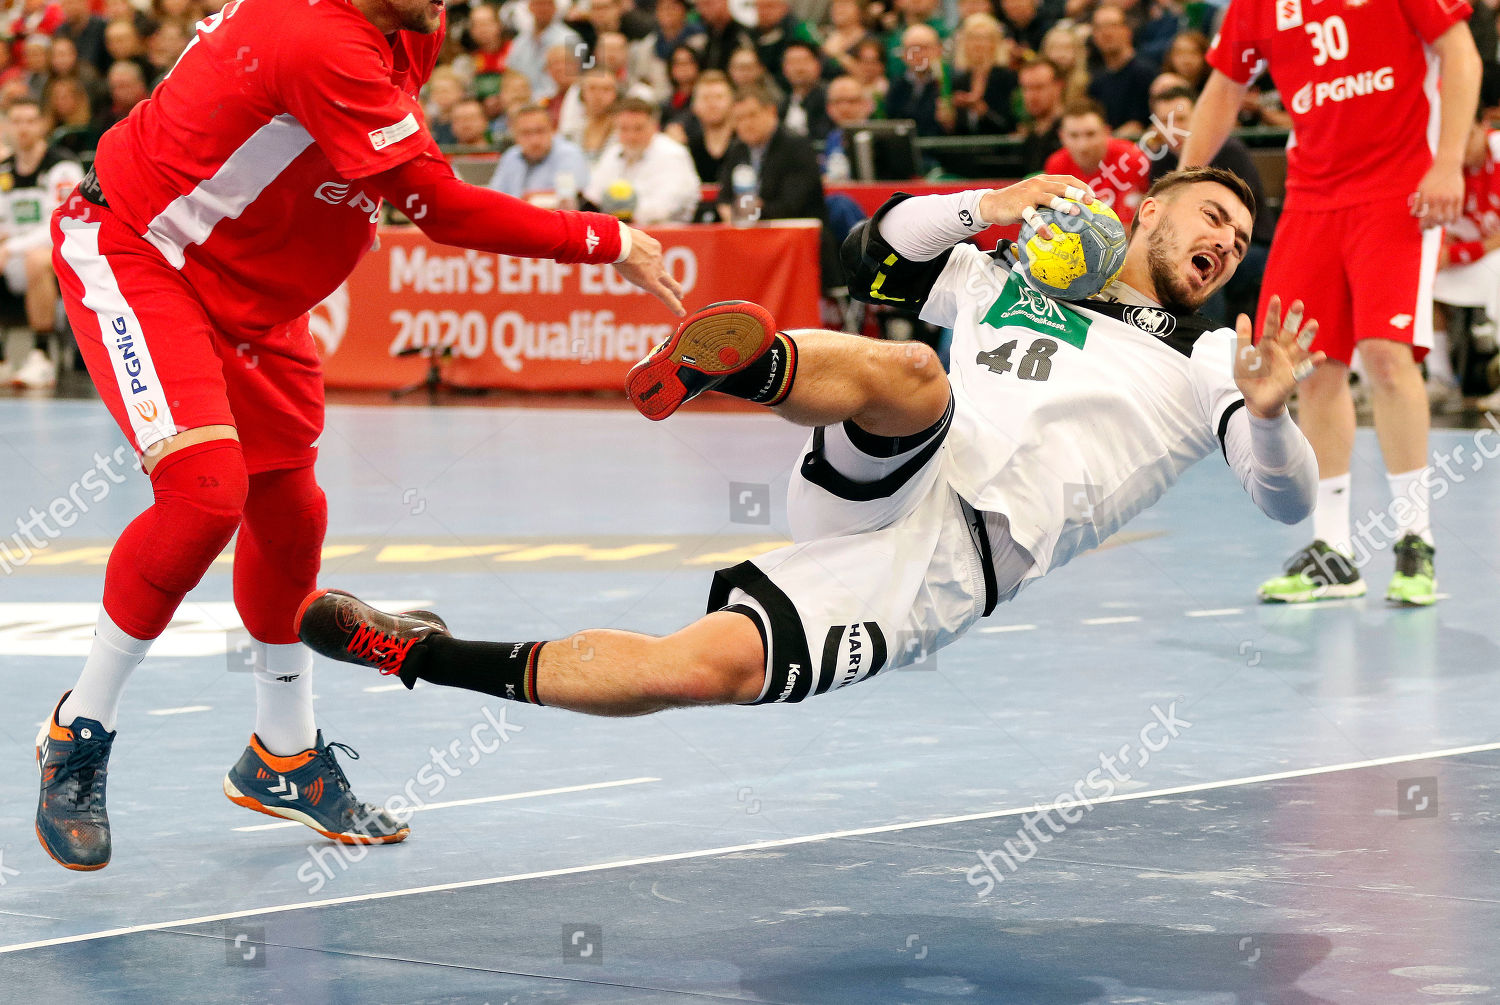 Handball Ehf Qualifier Euro 2020 Germany Poland 29 Editorial